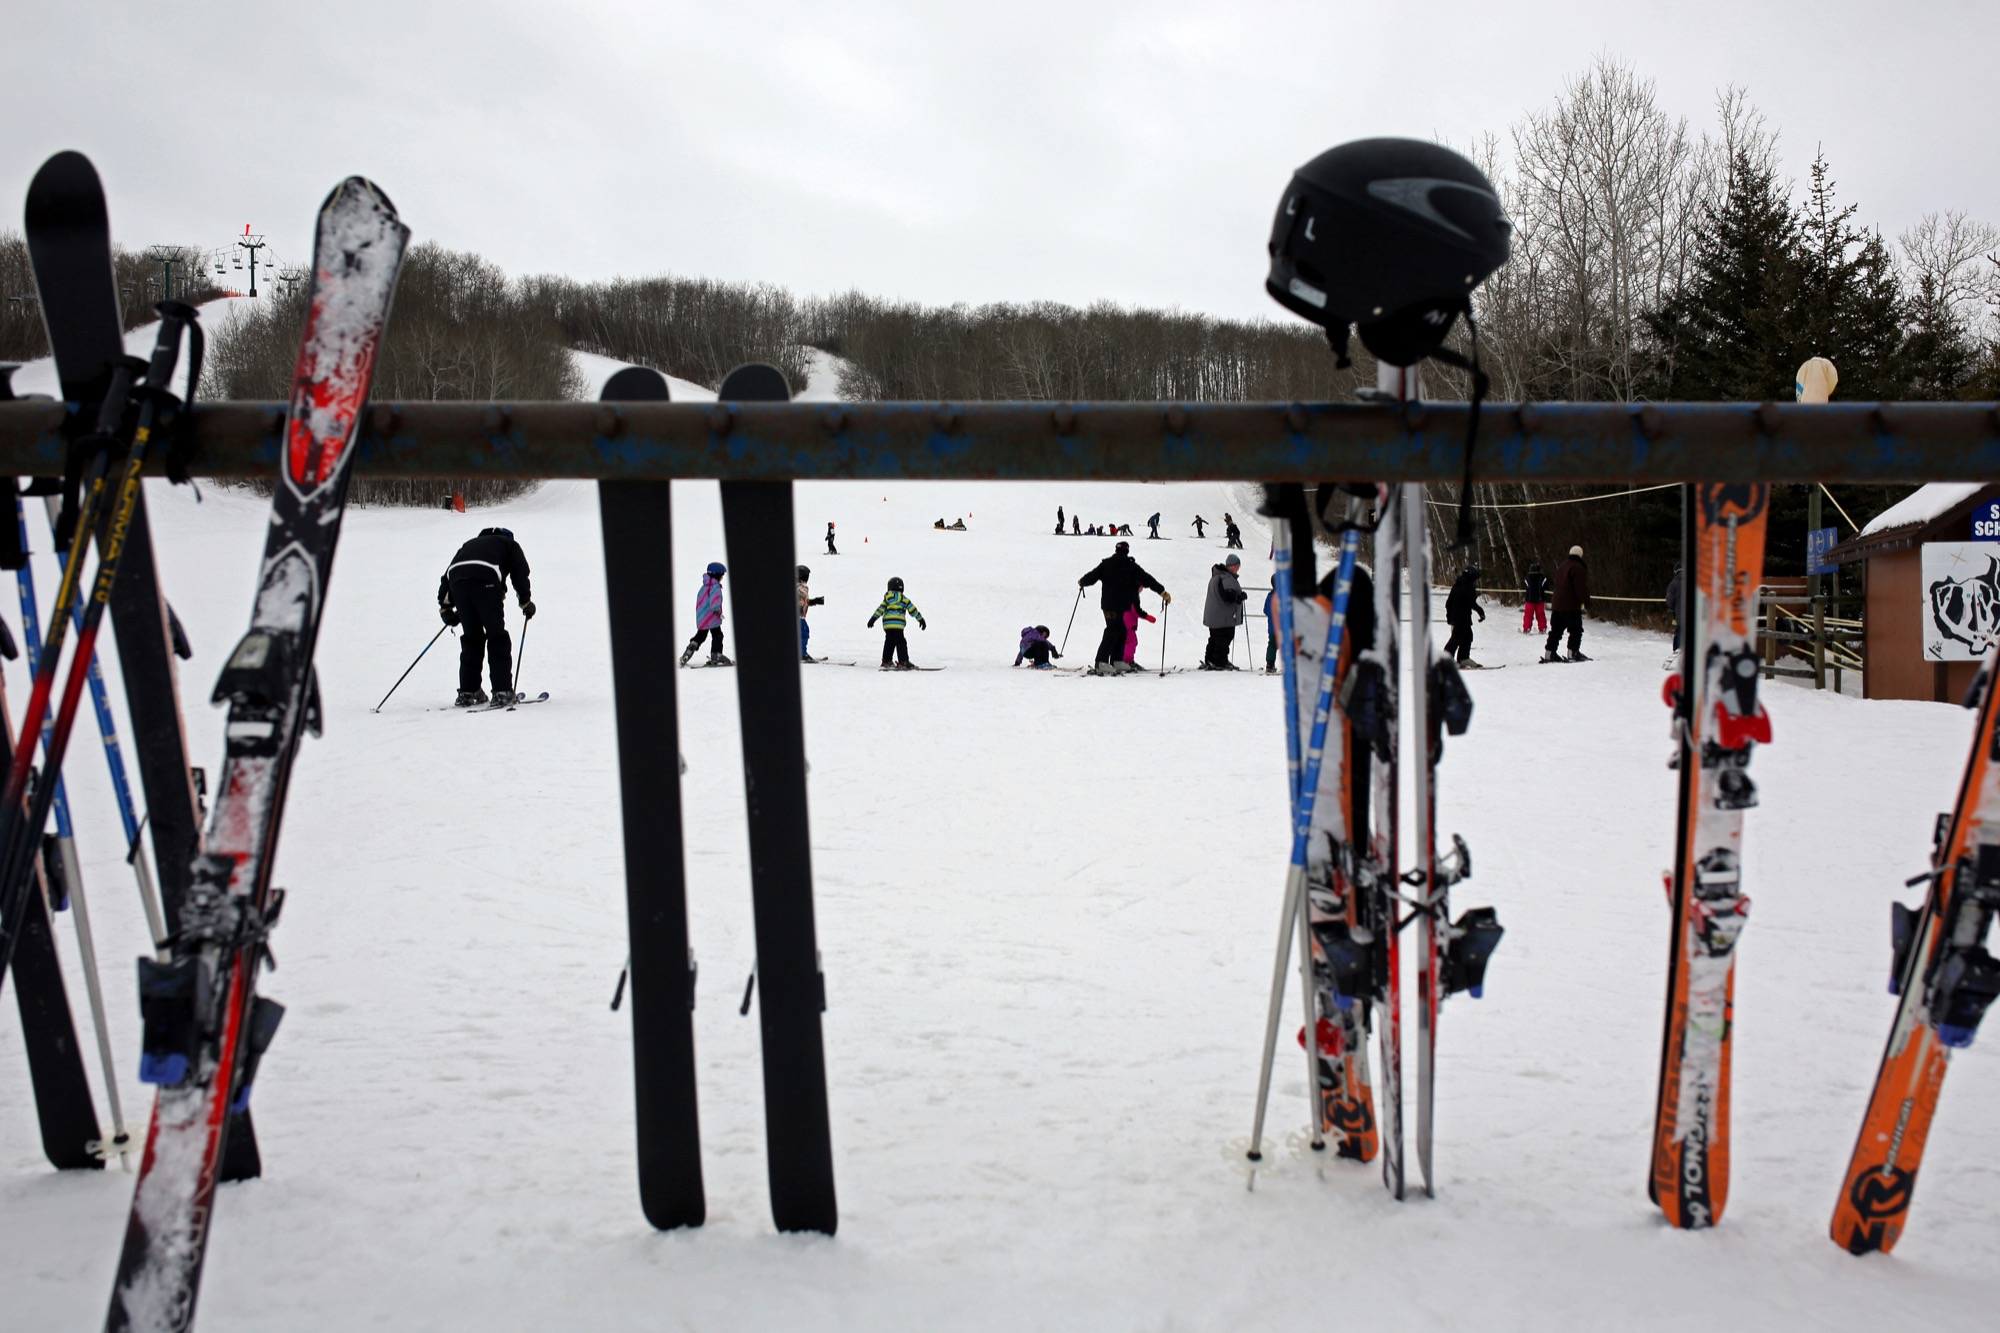 Skiers and snowboarders line up for the rope-tow at Minnedosa Ski Valley on an overcast day in 2016. A Brandon School Division student's family has filed a lawsuit against the skil hill and the BSD following an injury on March 15, 2017.